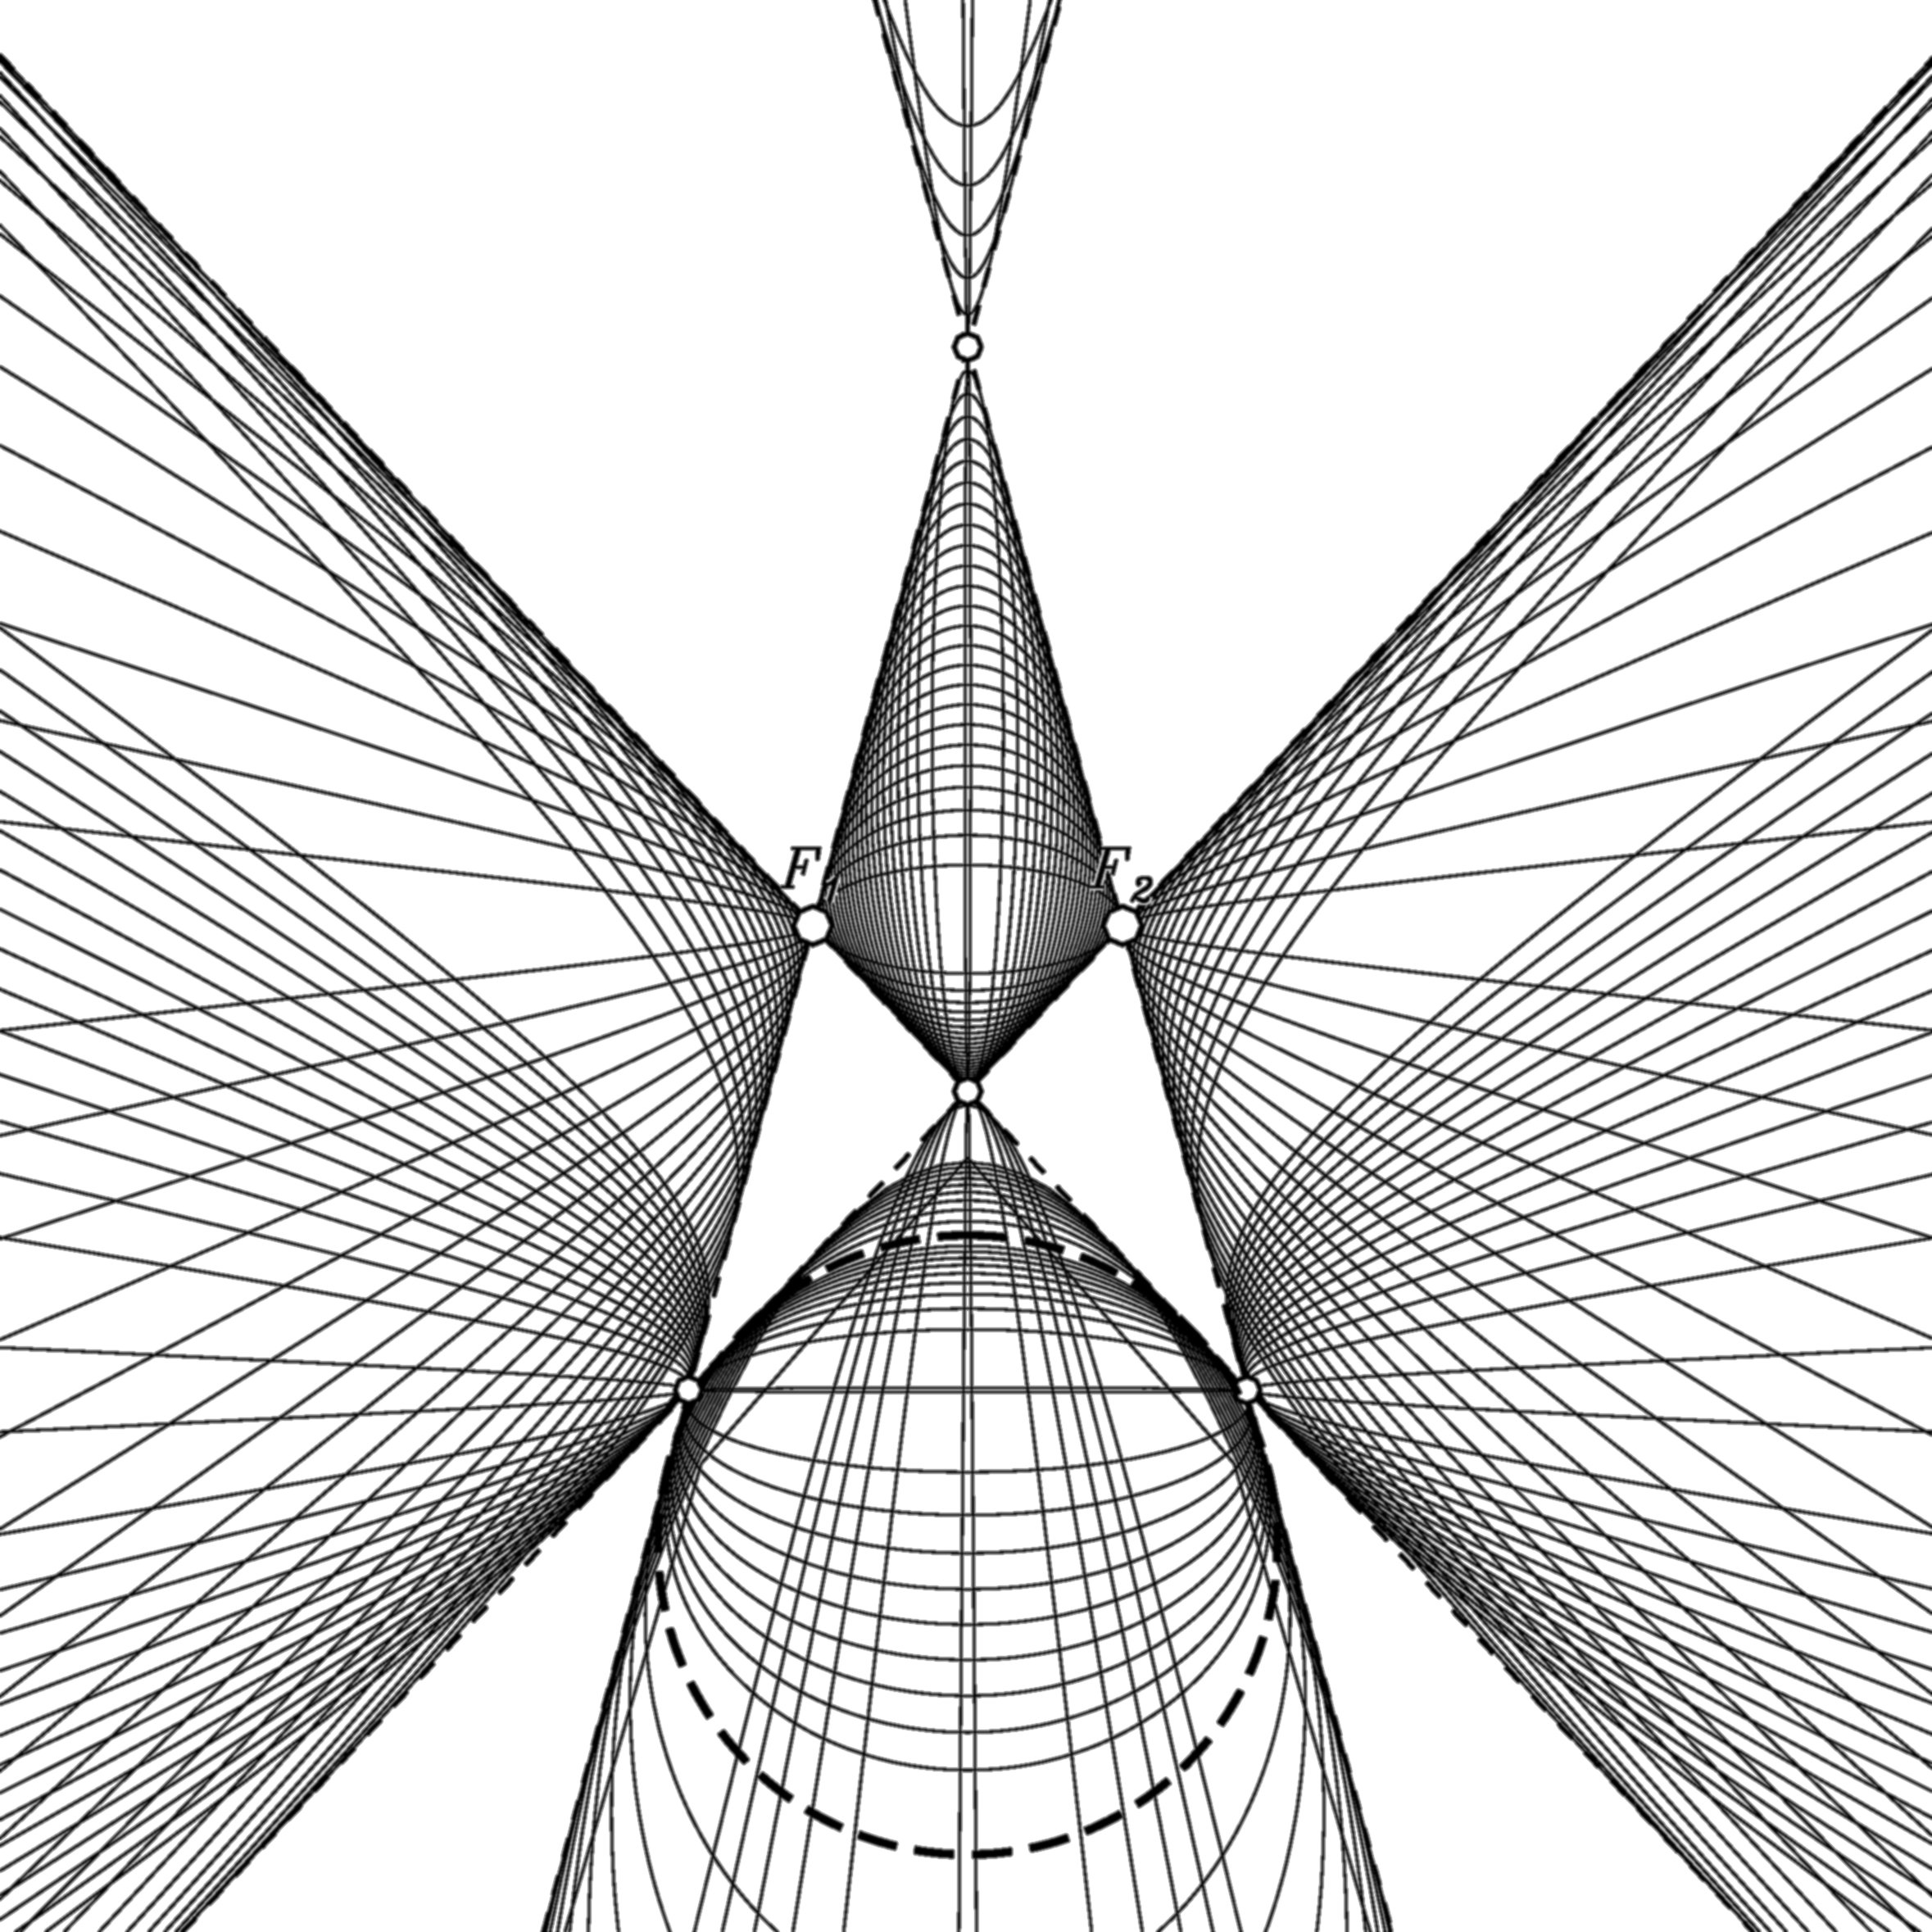 Confocal conics in projective geometry